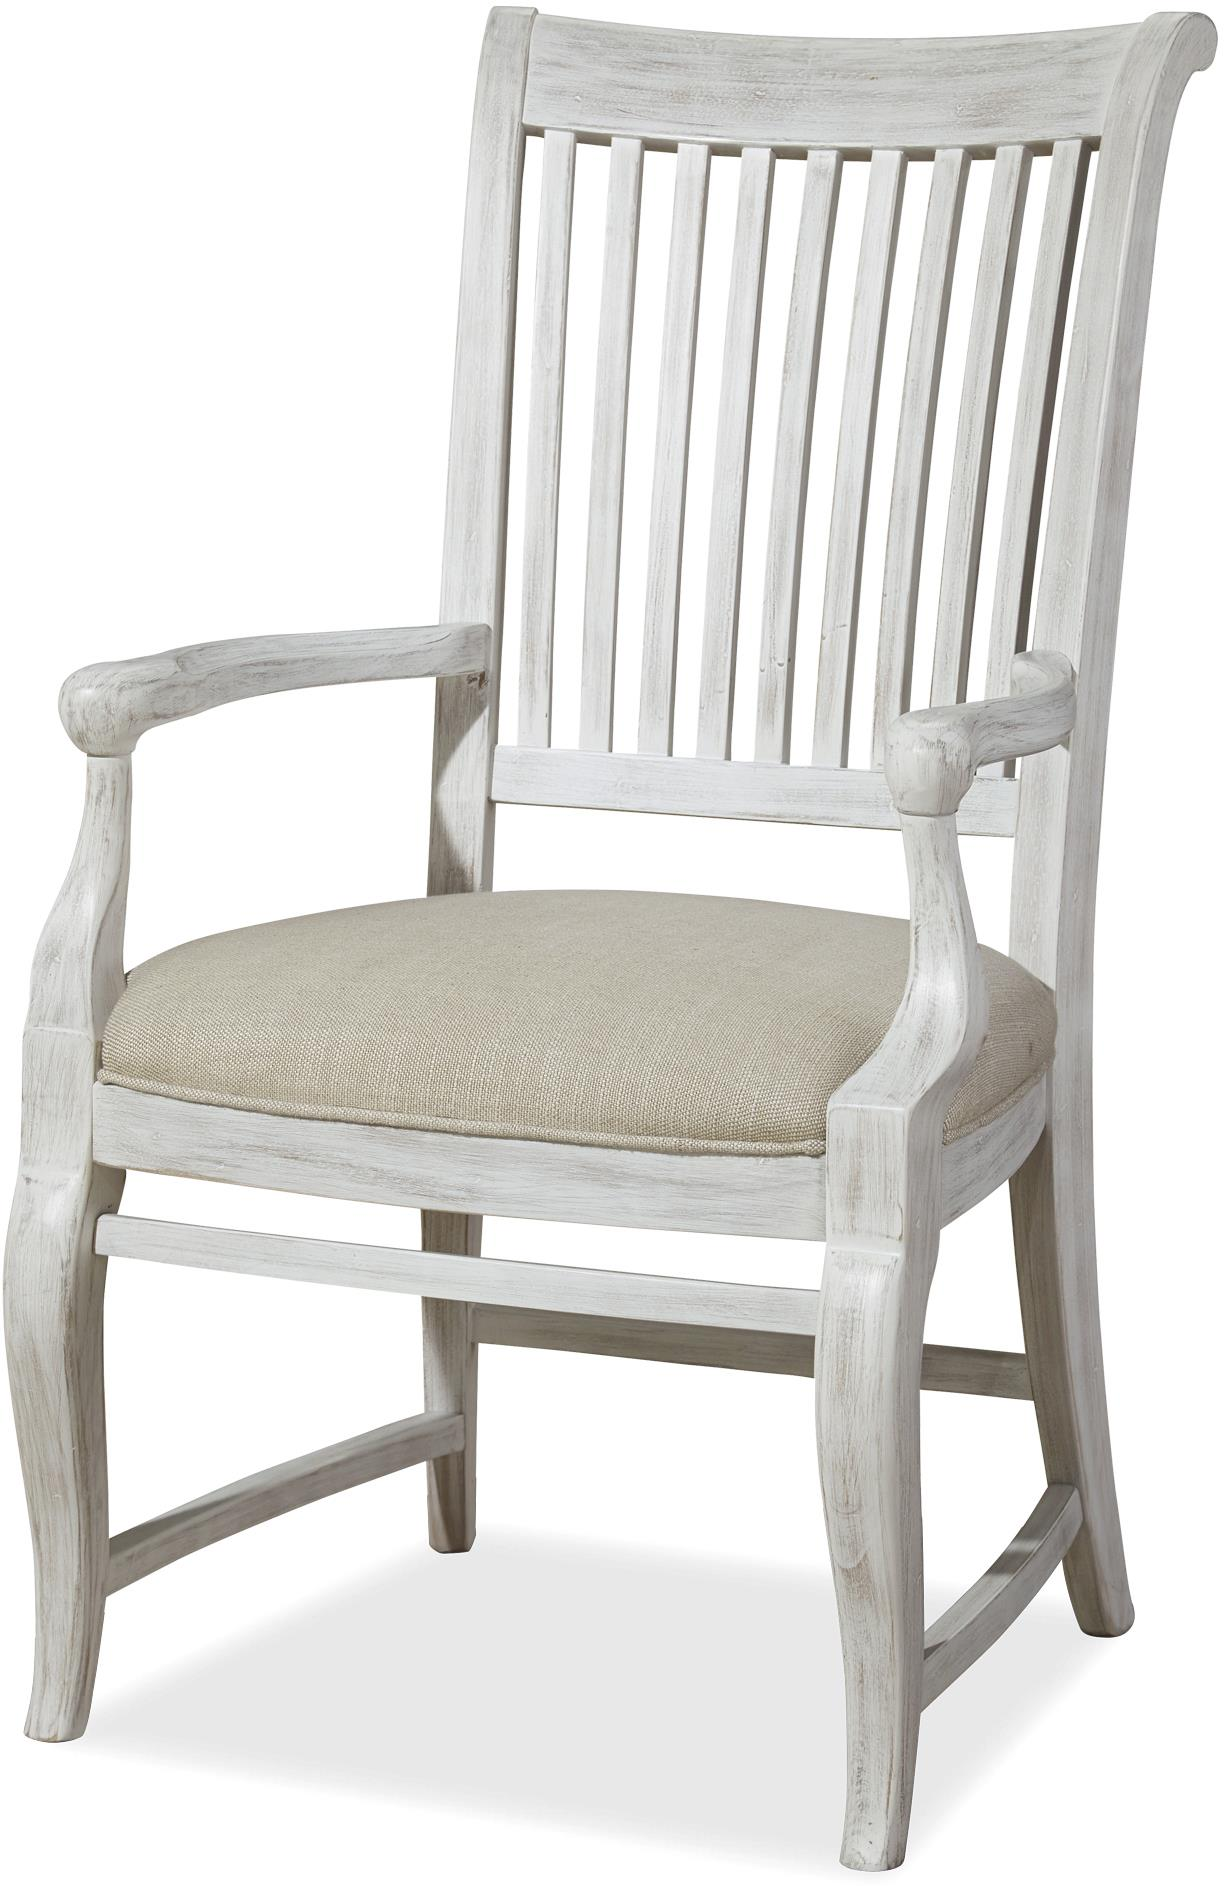 paula deen dogwood dining chairs chair covers gumtree by universal arm with